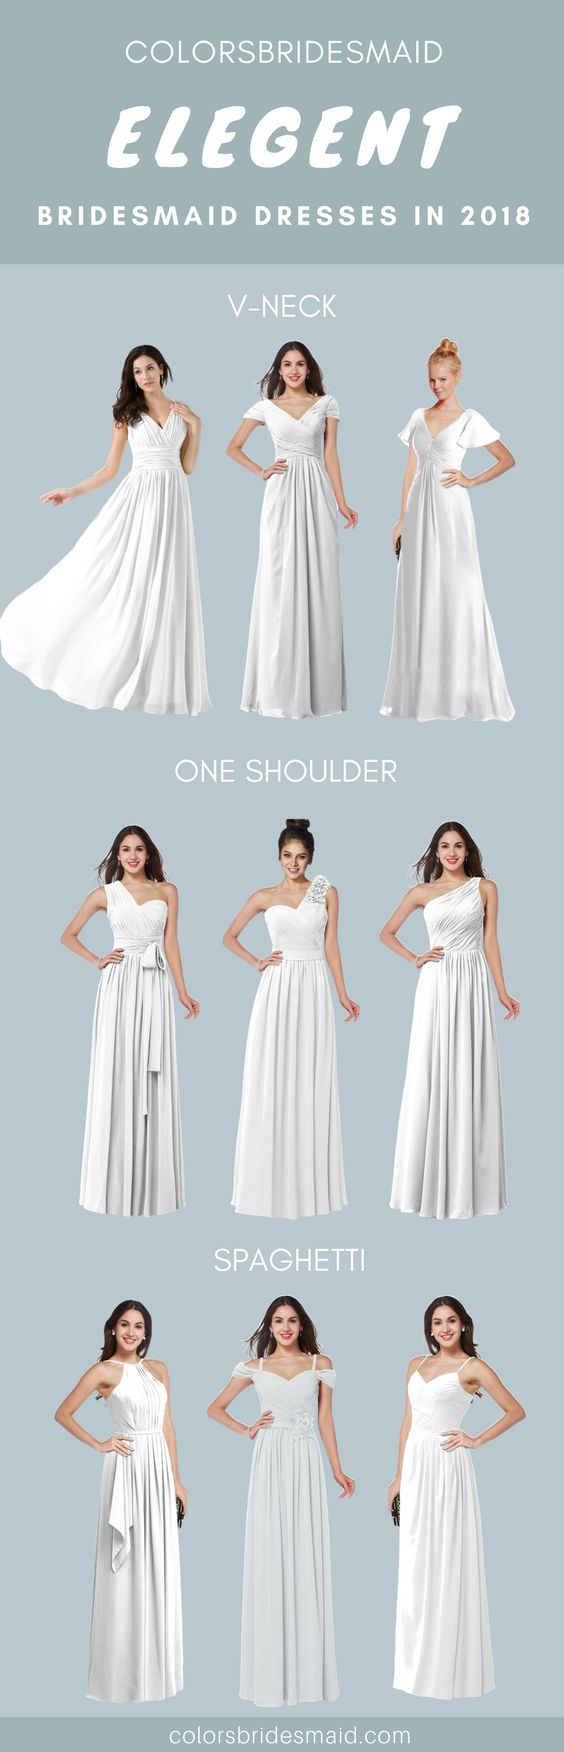 133 best Bridesmaid Dresses images by ColorsBridesmaid on Pinterest